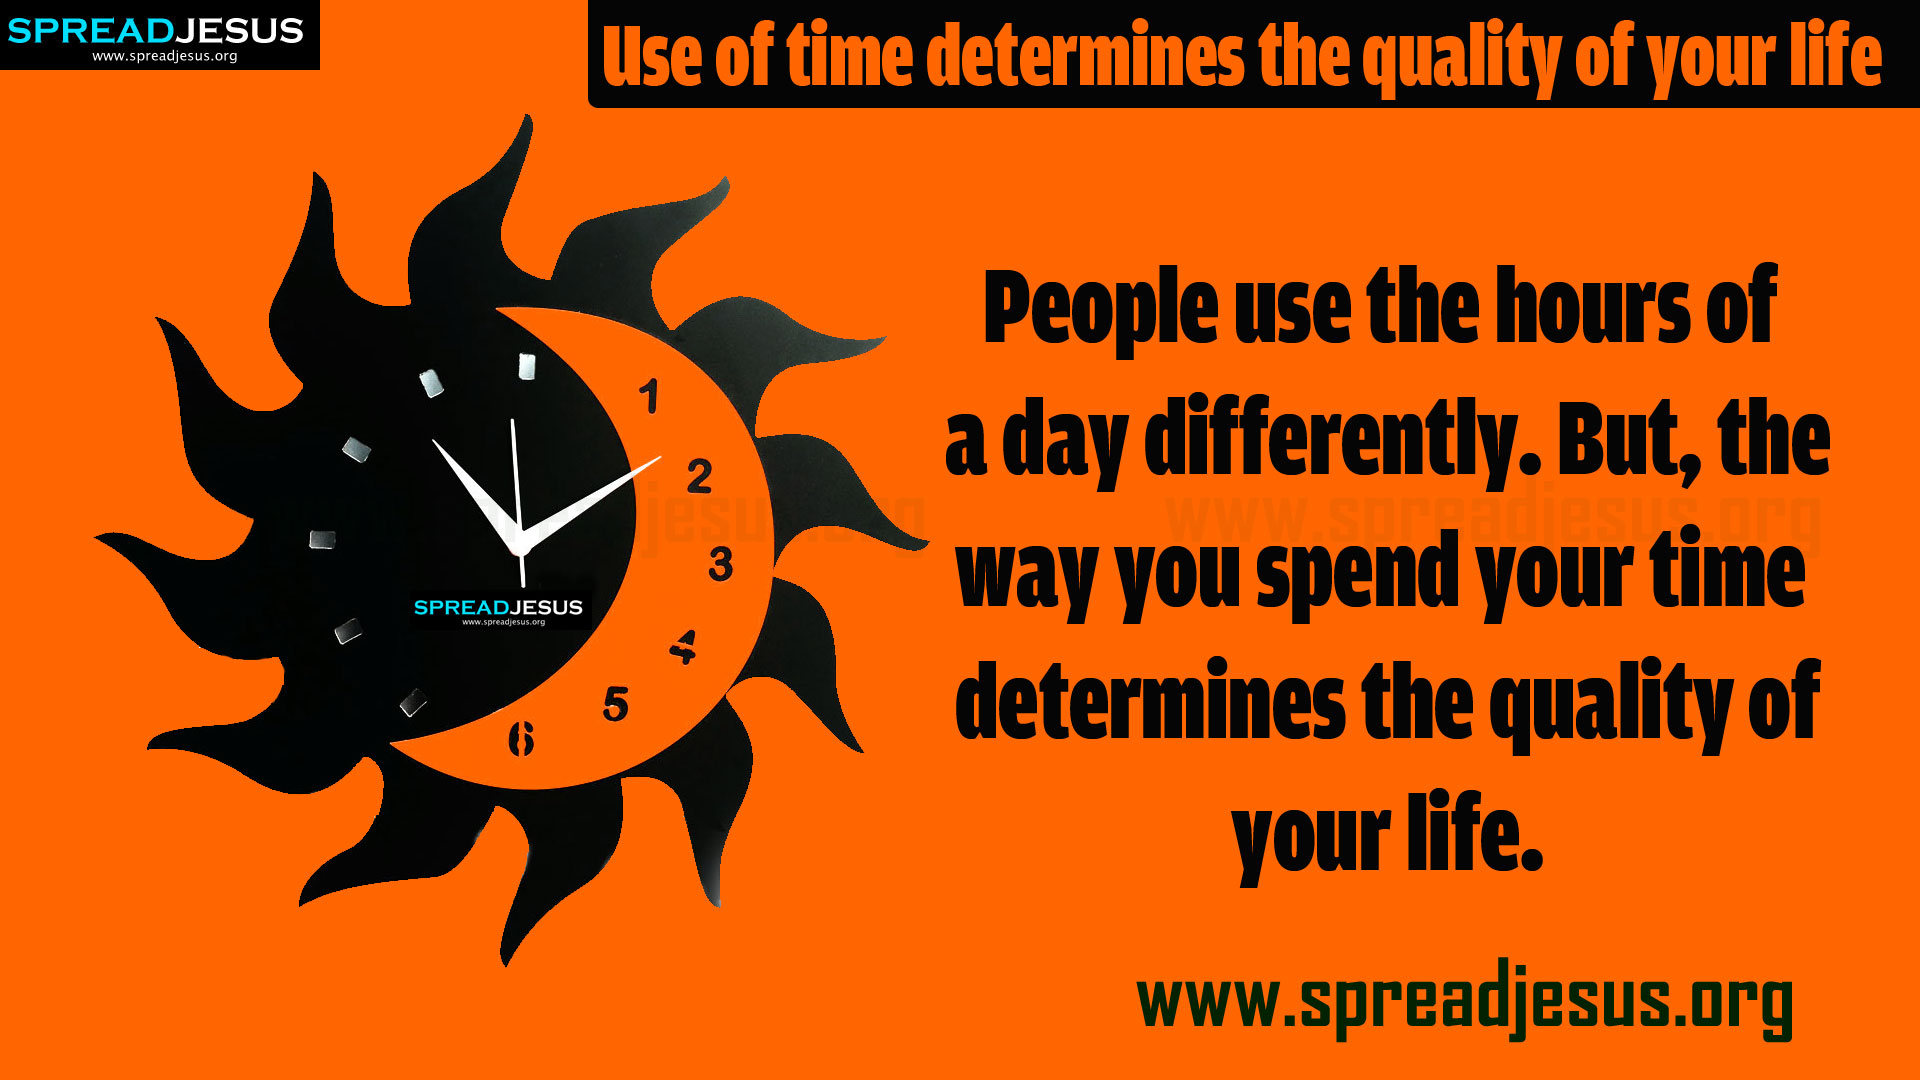 the management of your free time How do we find time for what matters most time management expert laura  vanderkam studies how busy people spend their lives, and she's discovered that .